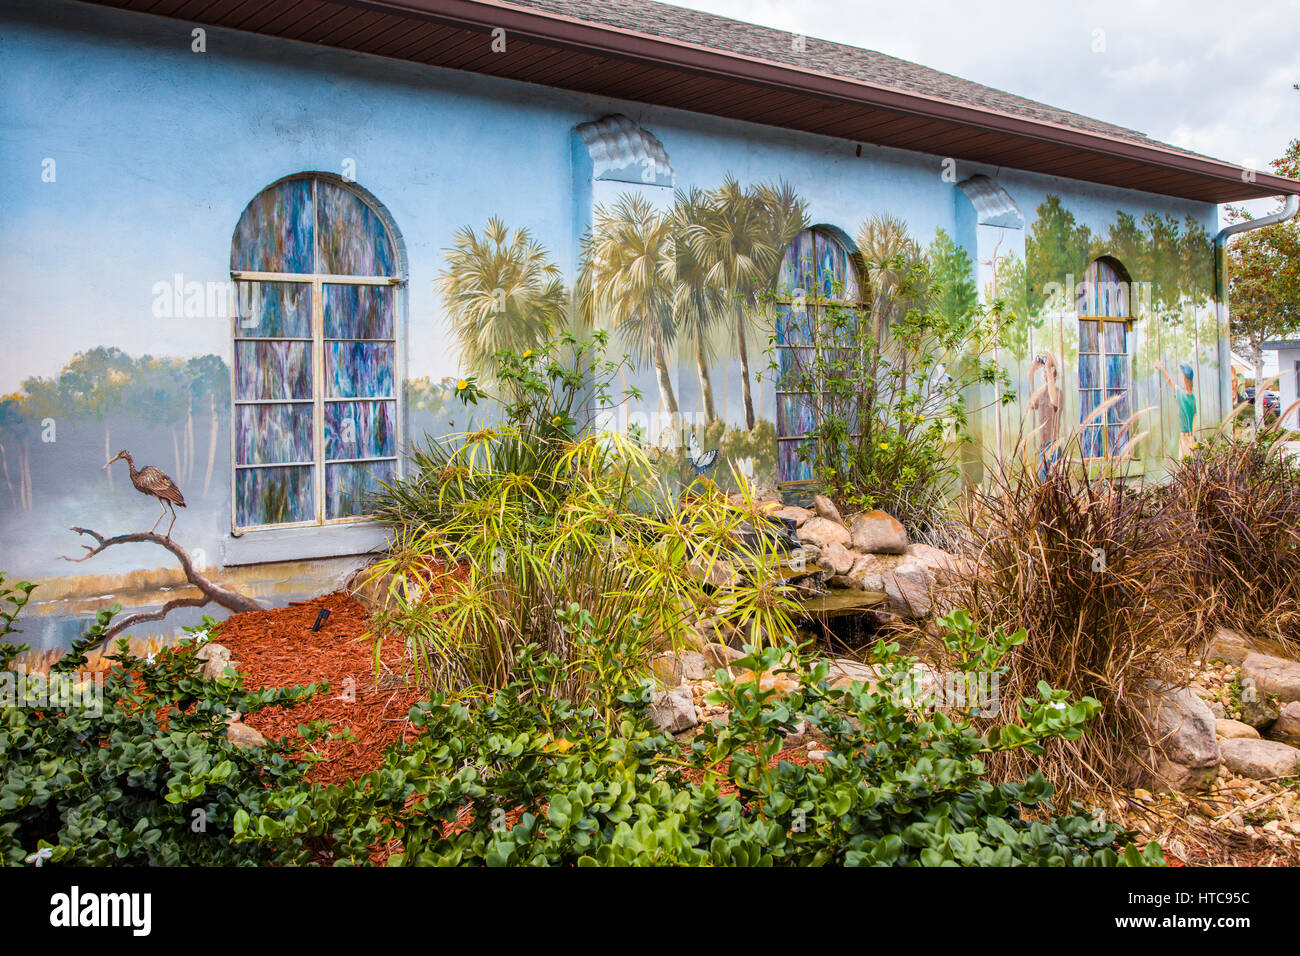 Delicieux Art Murals Painted On Outdoor Building Walls In Lake Placid Florida Known  As The Town Of